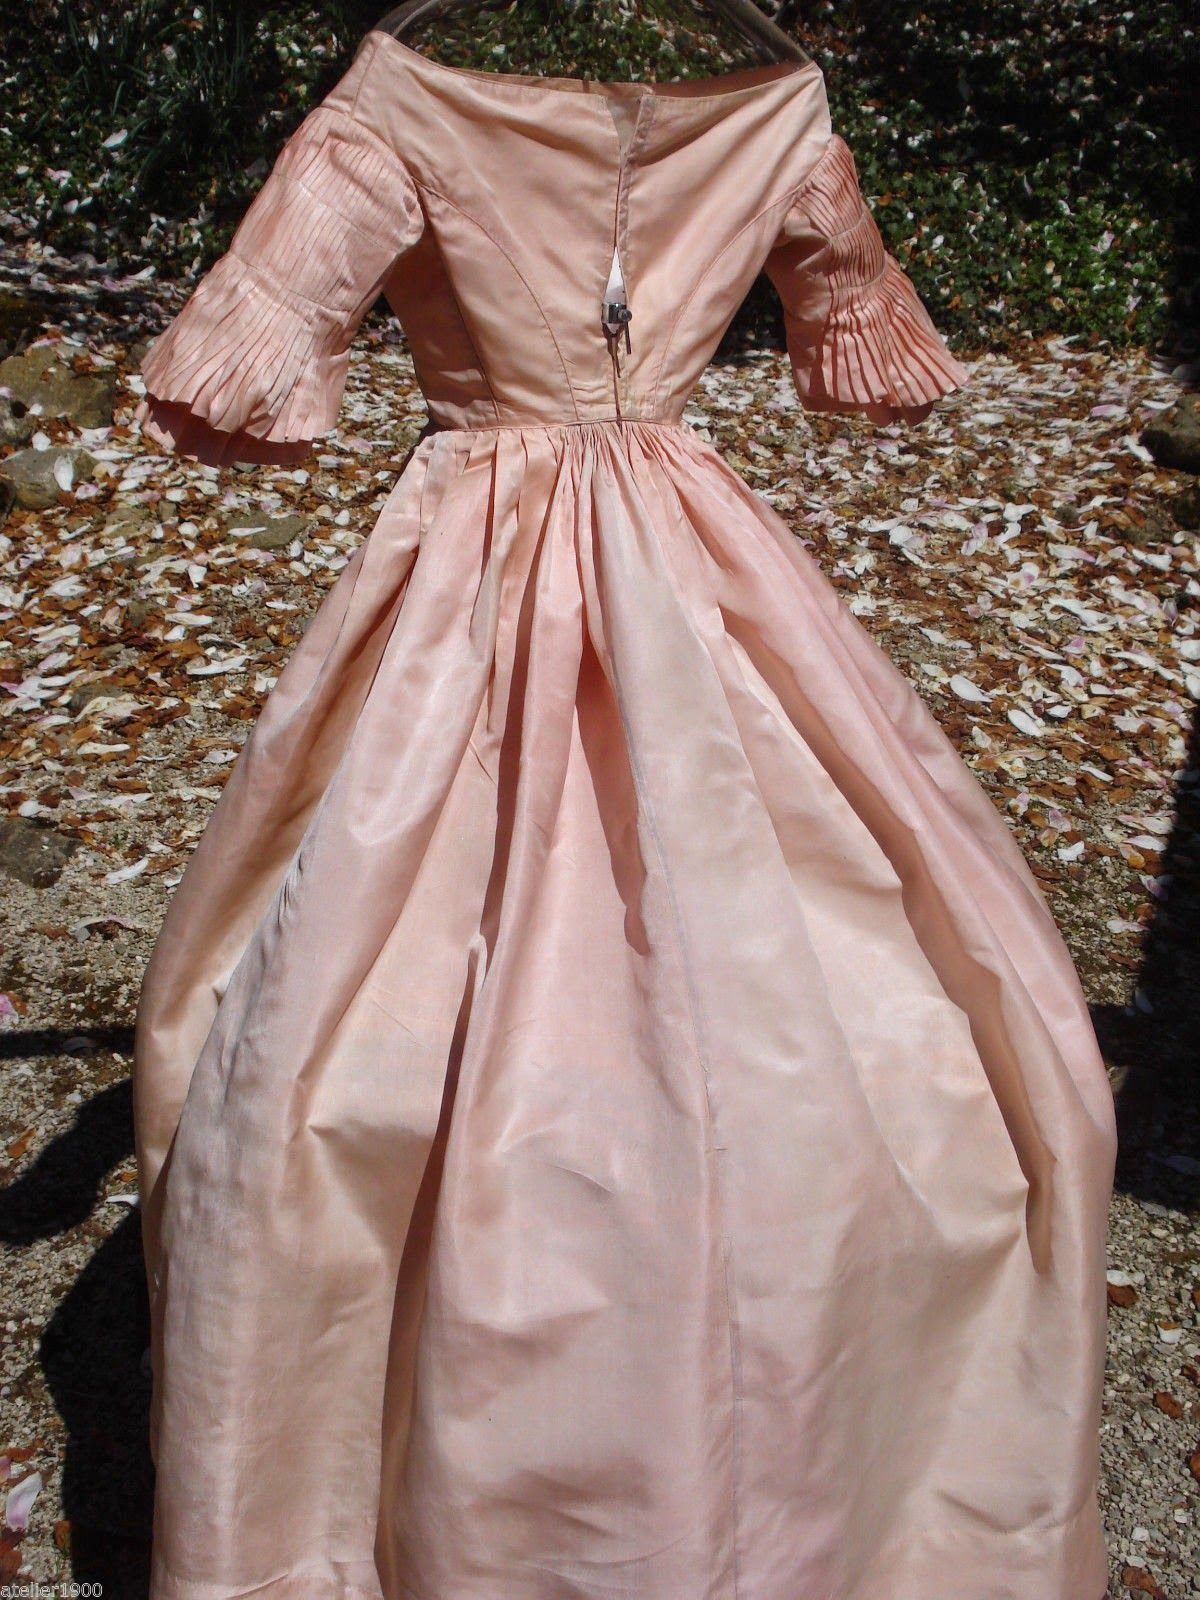 All The Pretty Dresses 1840 S Ball Gown Ball Gowns Pretty Dresses Gowns [ 1600 x 1200 Pixel ]